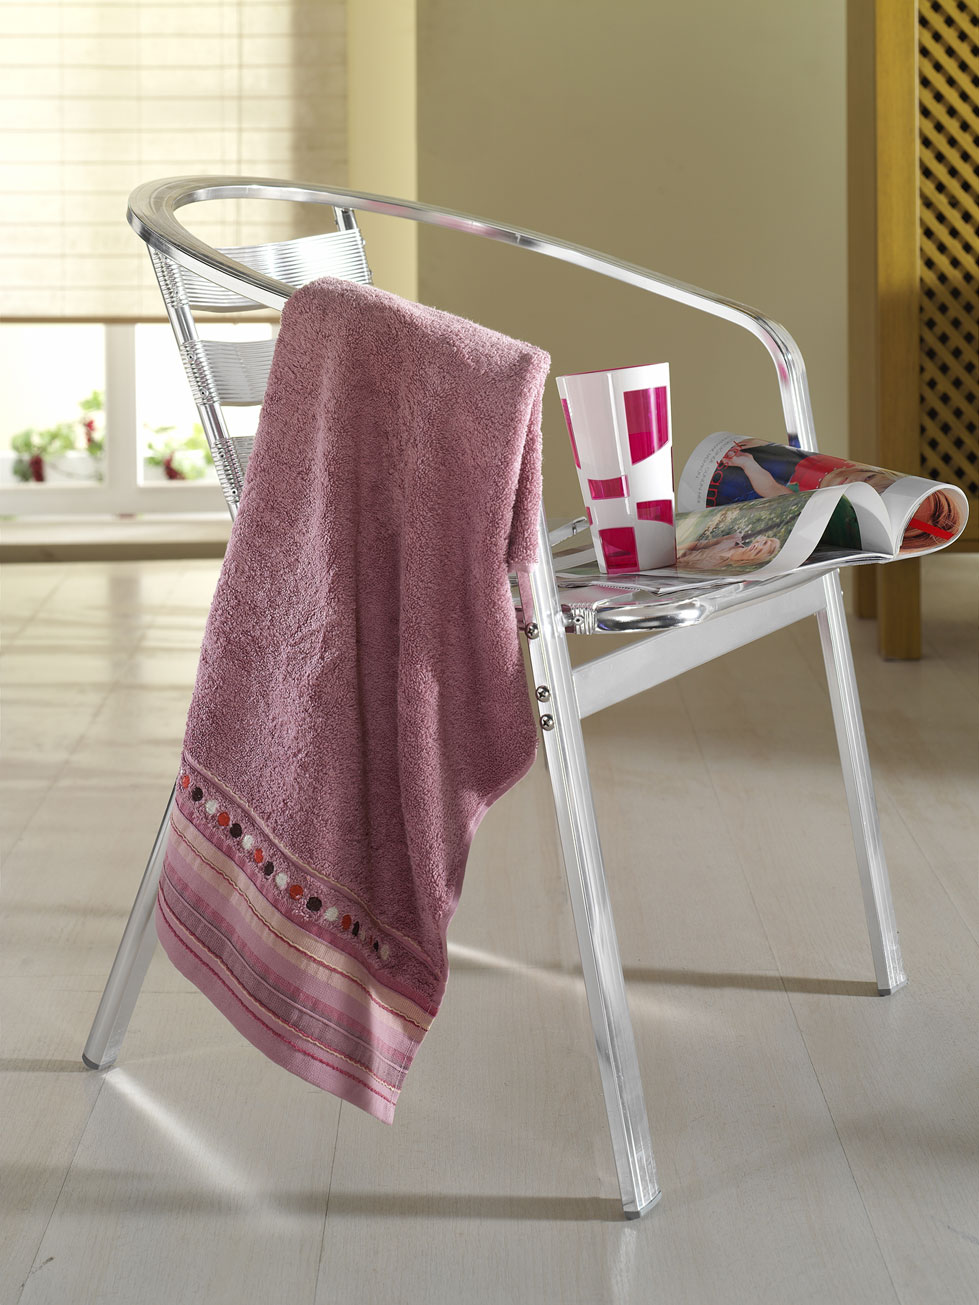 bovine kitchen towels, towels and bedding plus, wearing towels, flour sack towels